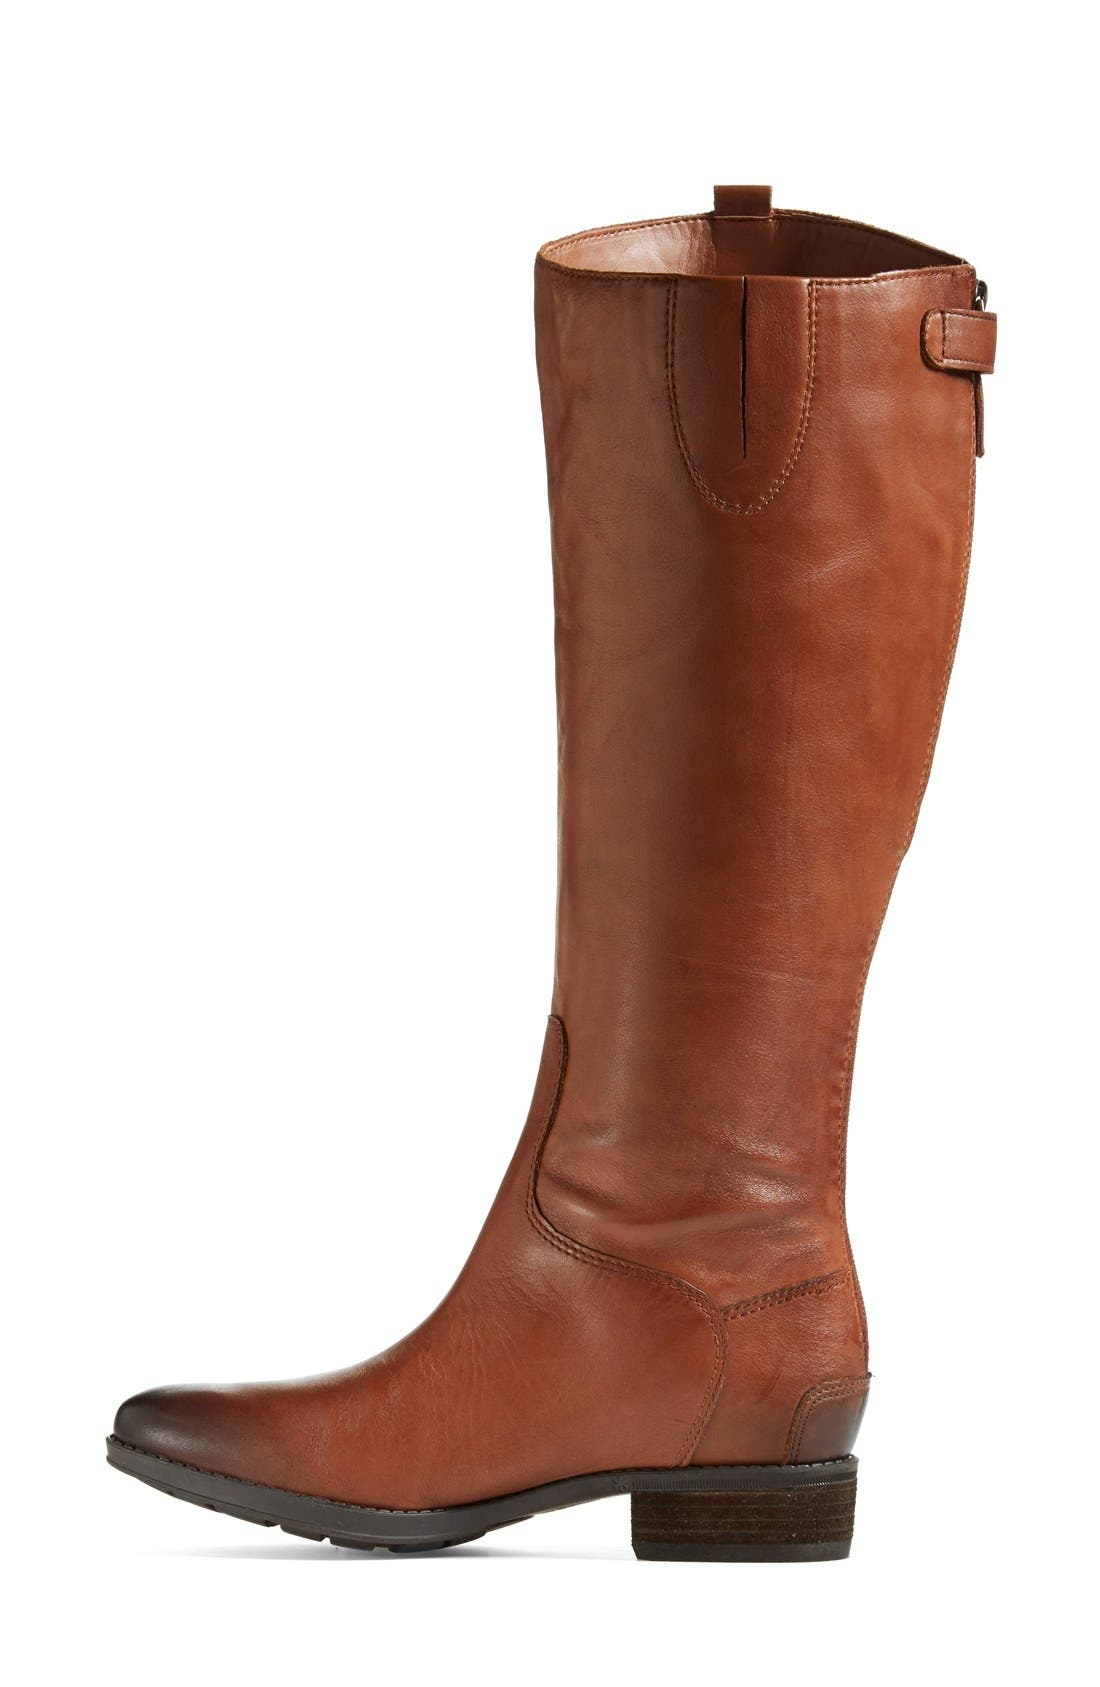 Alternate Image 2  - Sam Edelman 'Penny' Boot (Women) (Wide Calf)